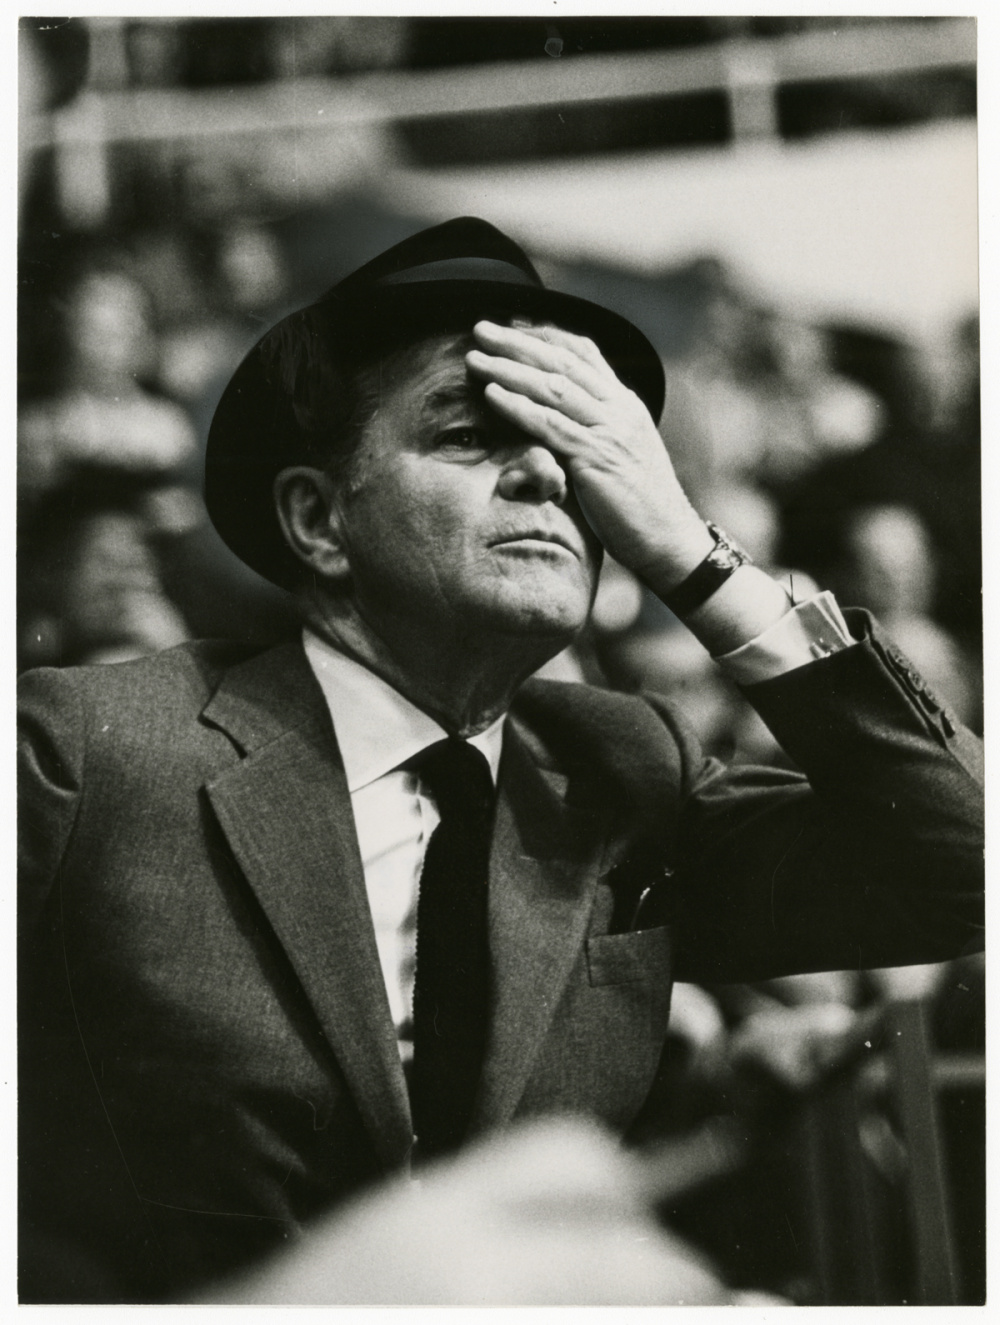 Fred Ross, Jack Kent Cooke, sports team owner, 1967. Gelatin silver print, 9 x 7